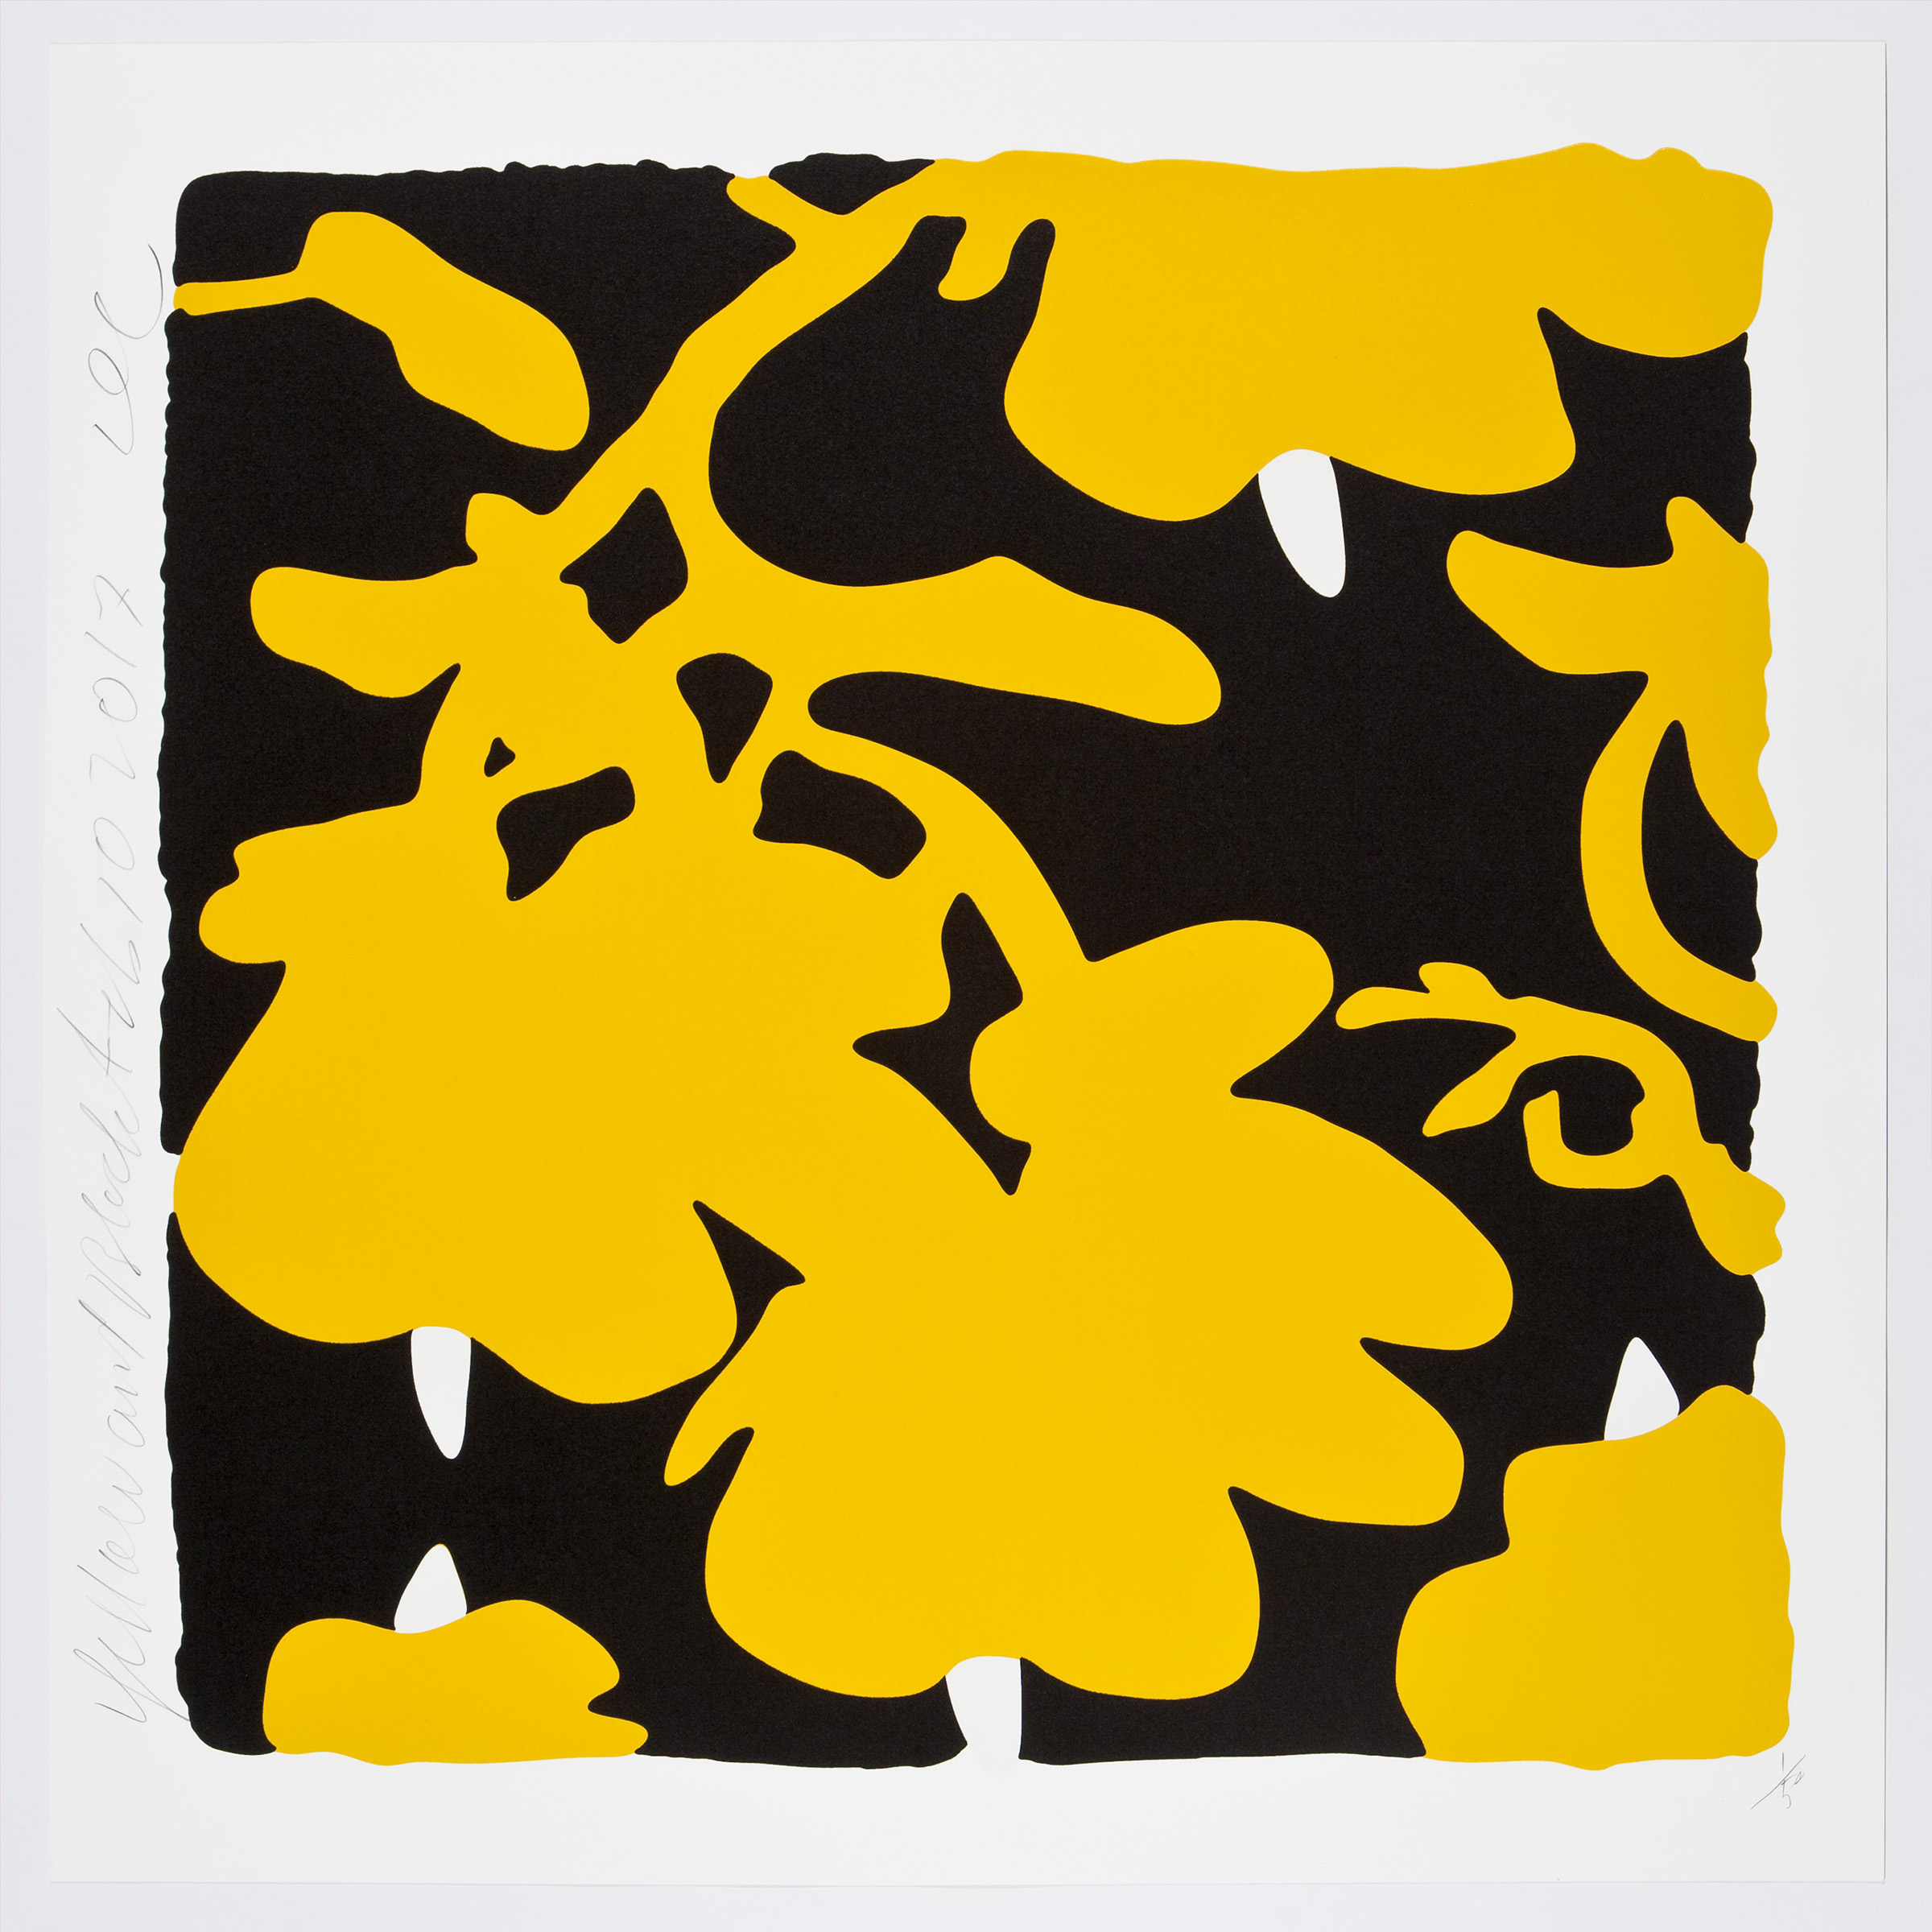 Donald Sultan  Yellow and Black , 2017 color silkscreen with over-printed flocking on Rising, 2-ply museum board 32 x 32 in.